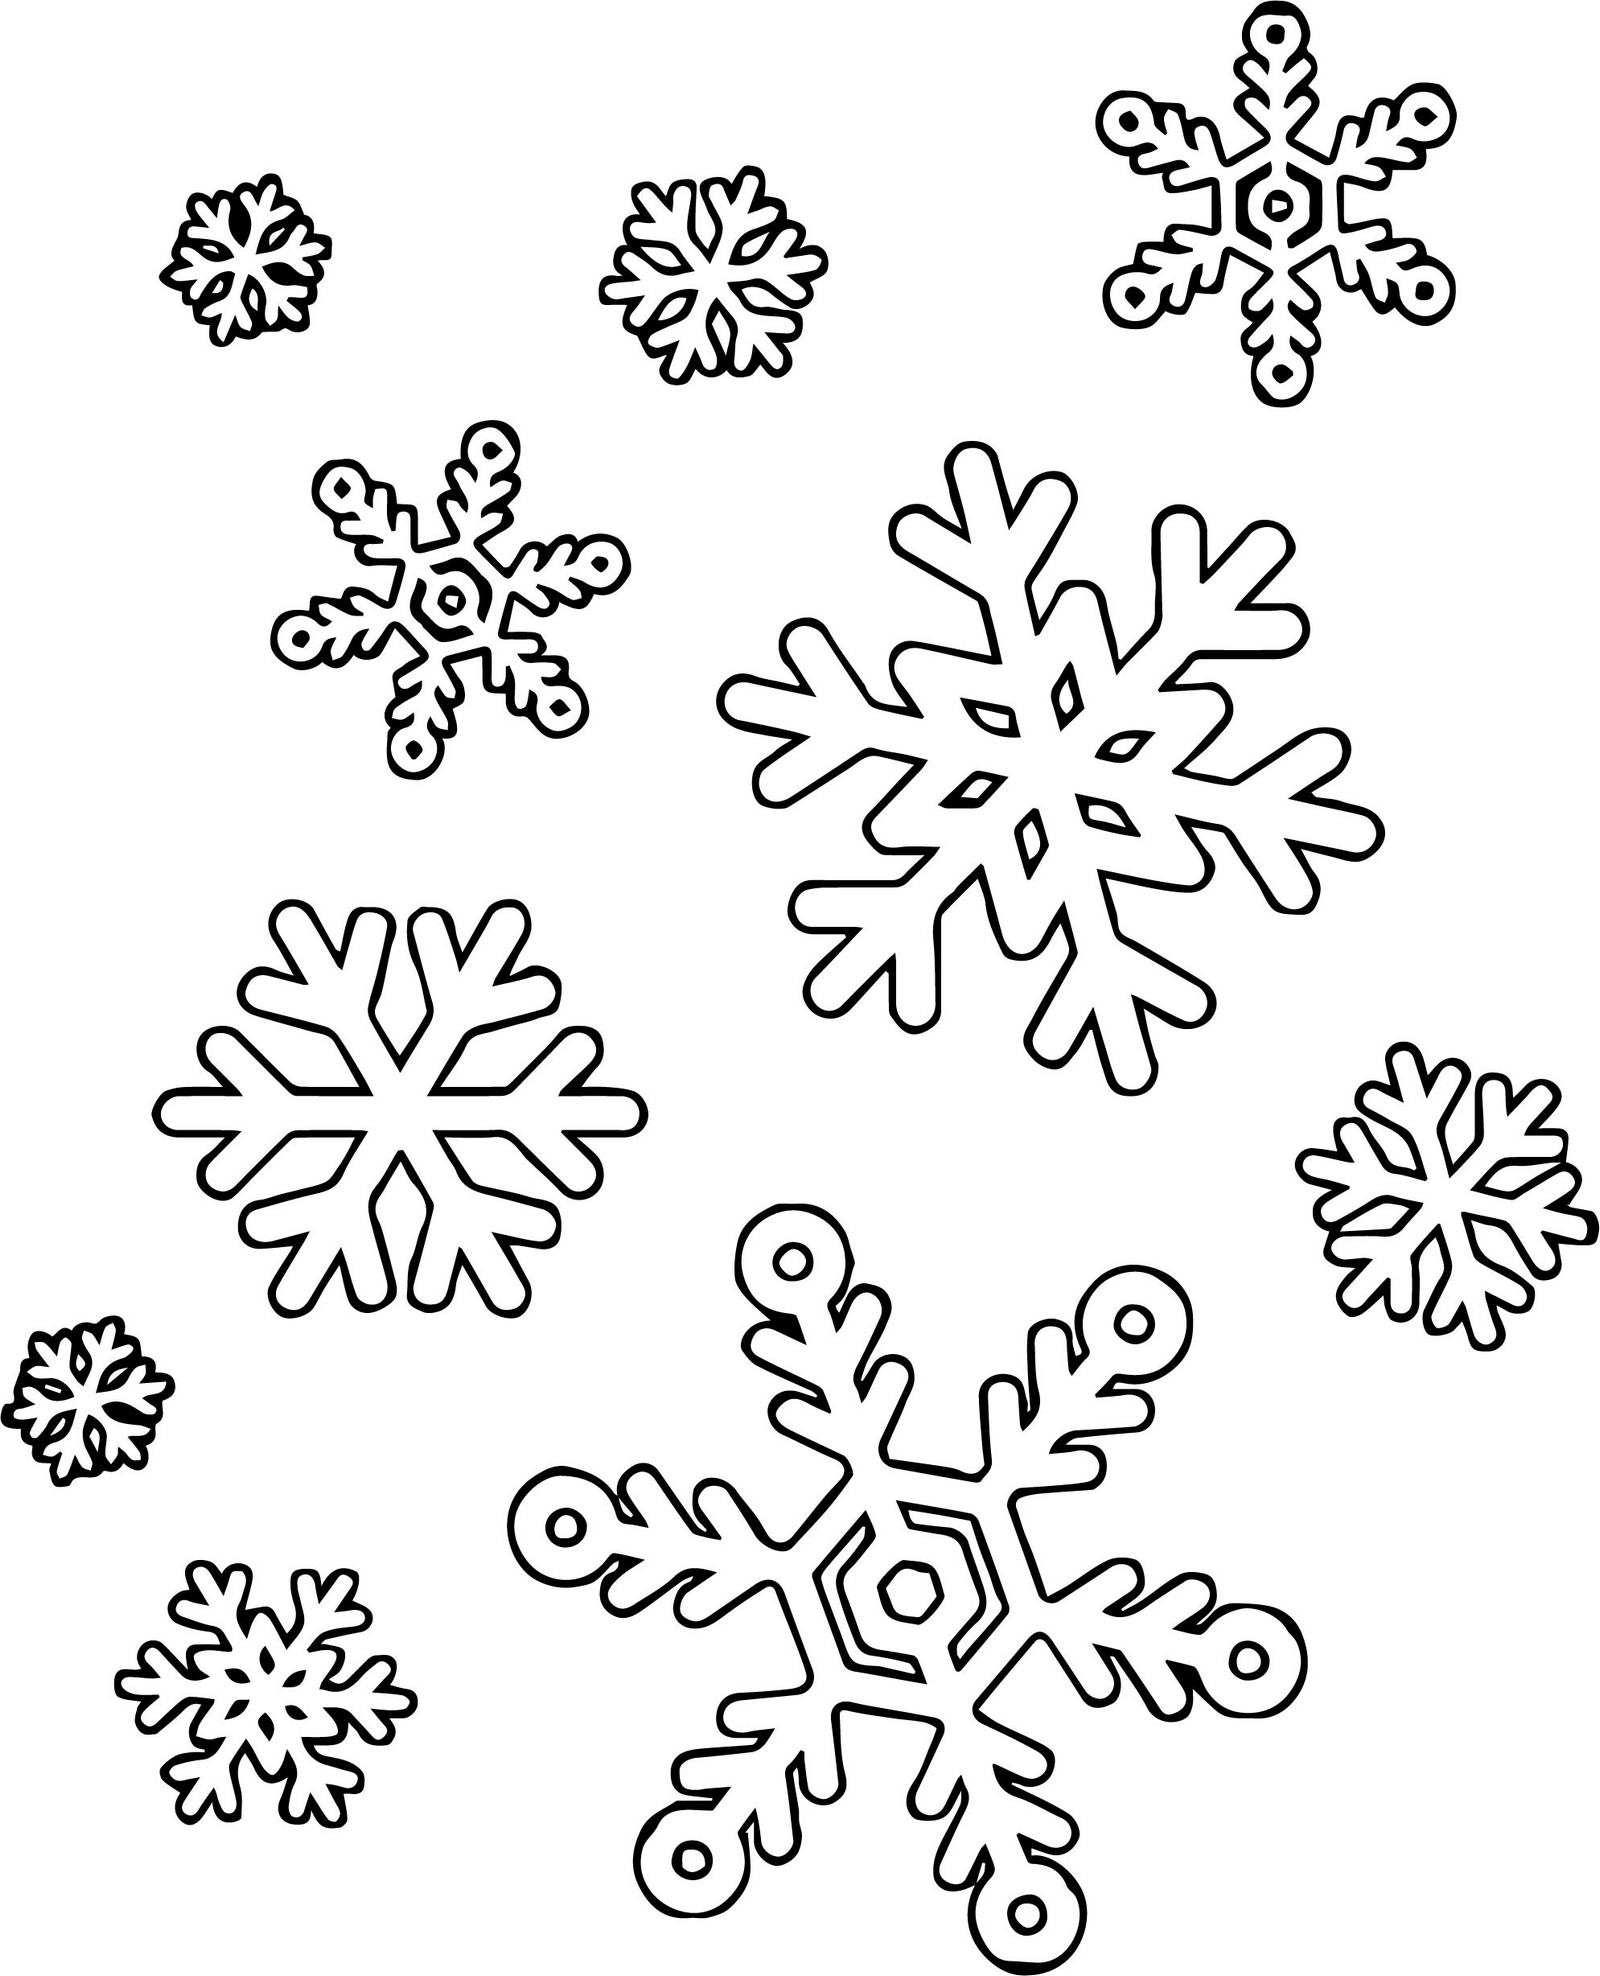 snowflake pictures to color snowflake pictures to color snowflake pictures to color